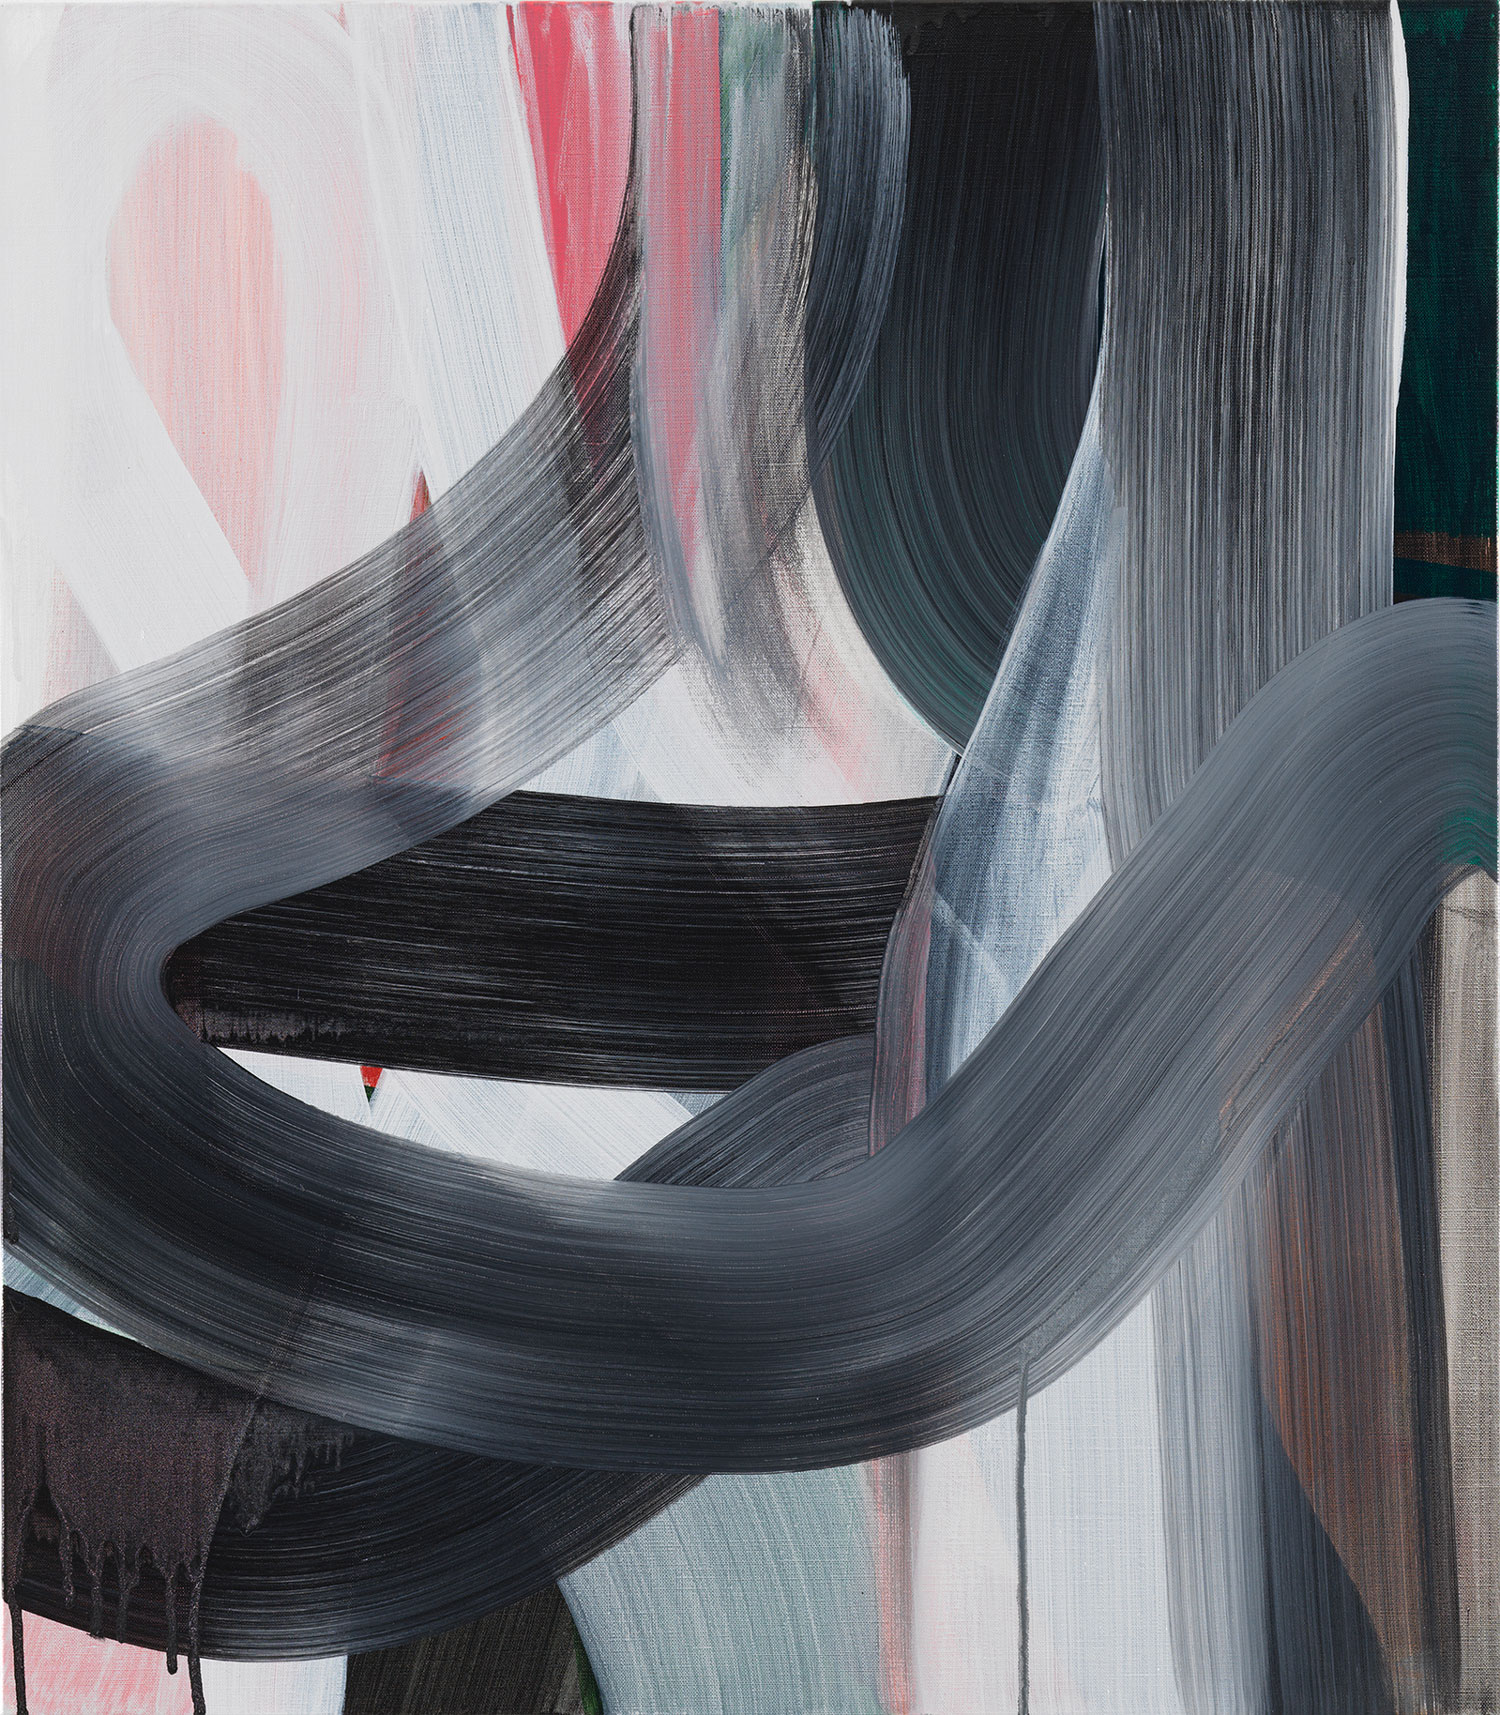 Liliane Tomasko sharper turn 2019 Acrylic on linen 32 x 28 inches (81.3 x 71.1 cm) 2019 Marc Straus Gallery